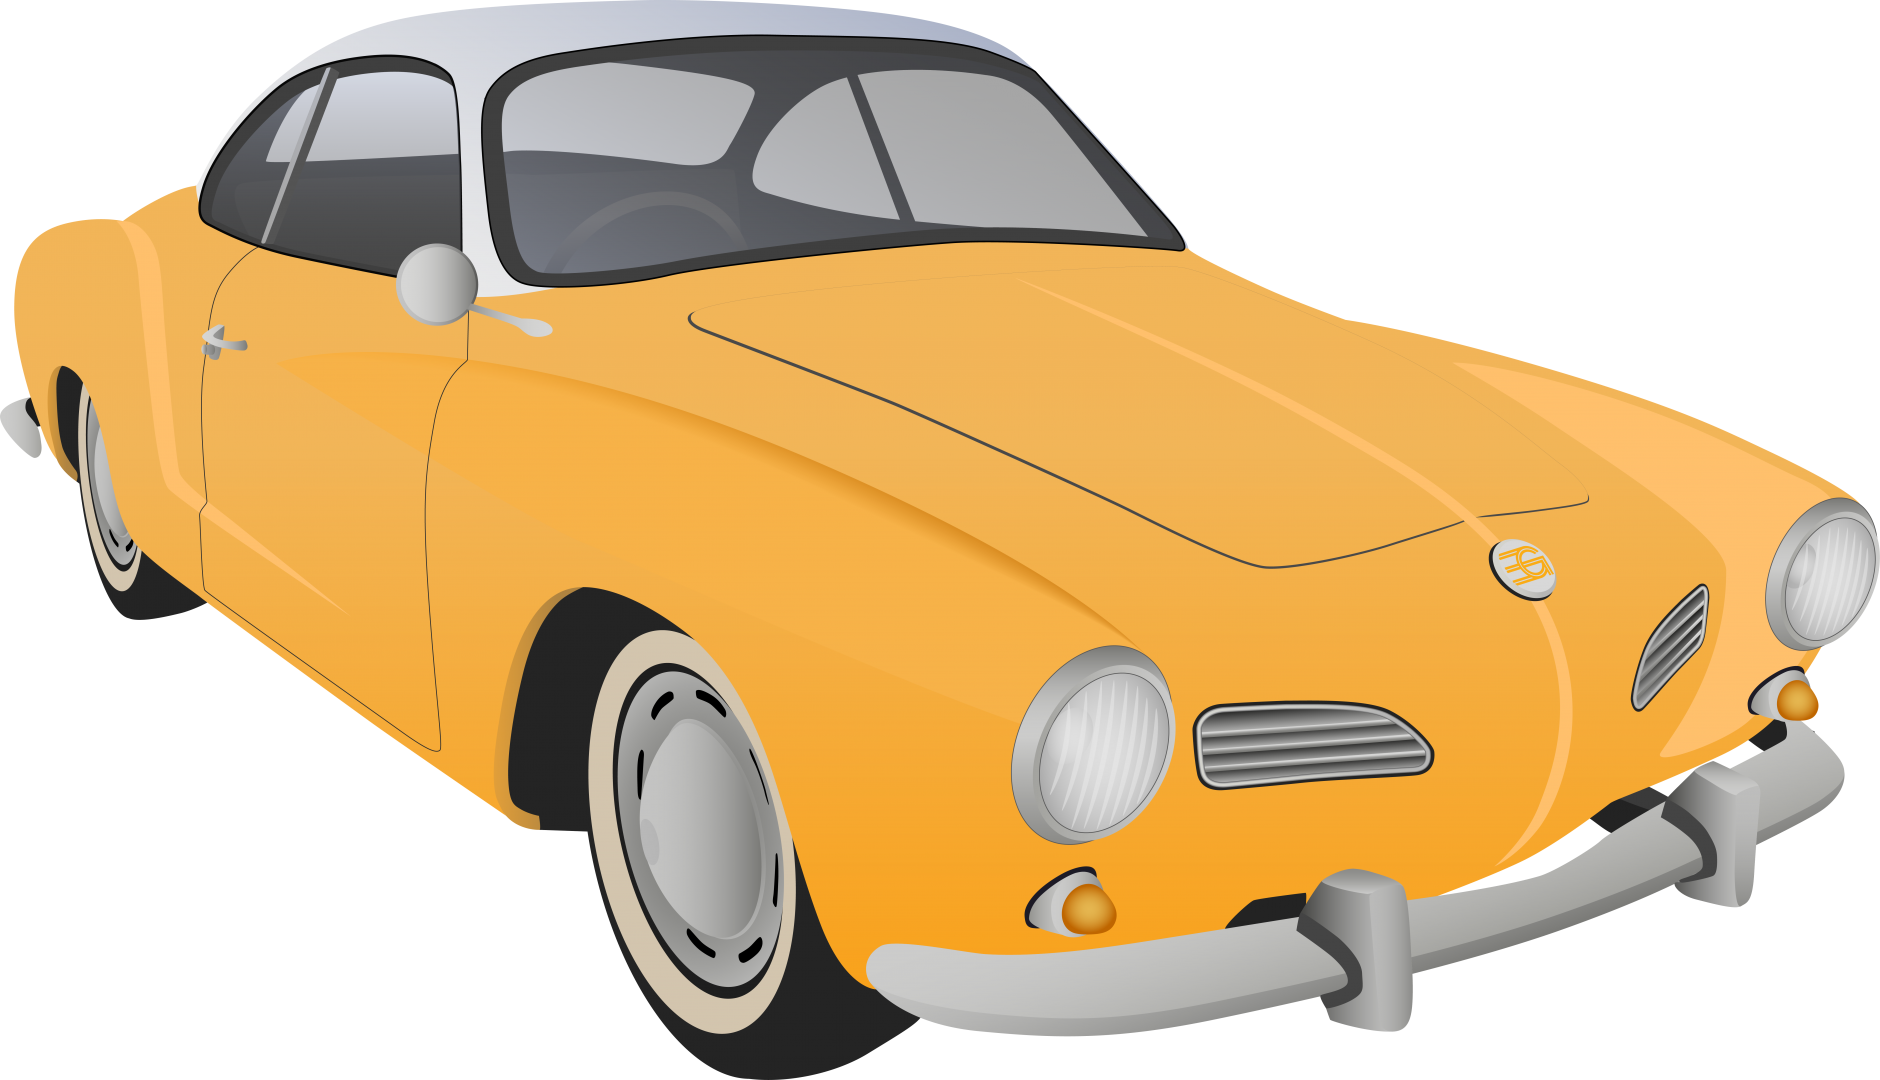 EV Conversion Karmann Ghia